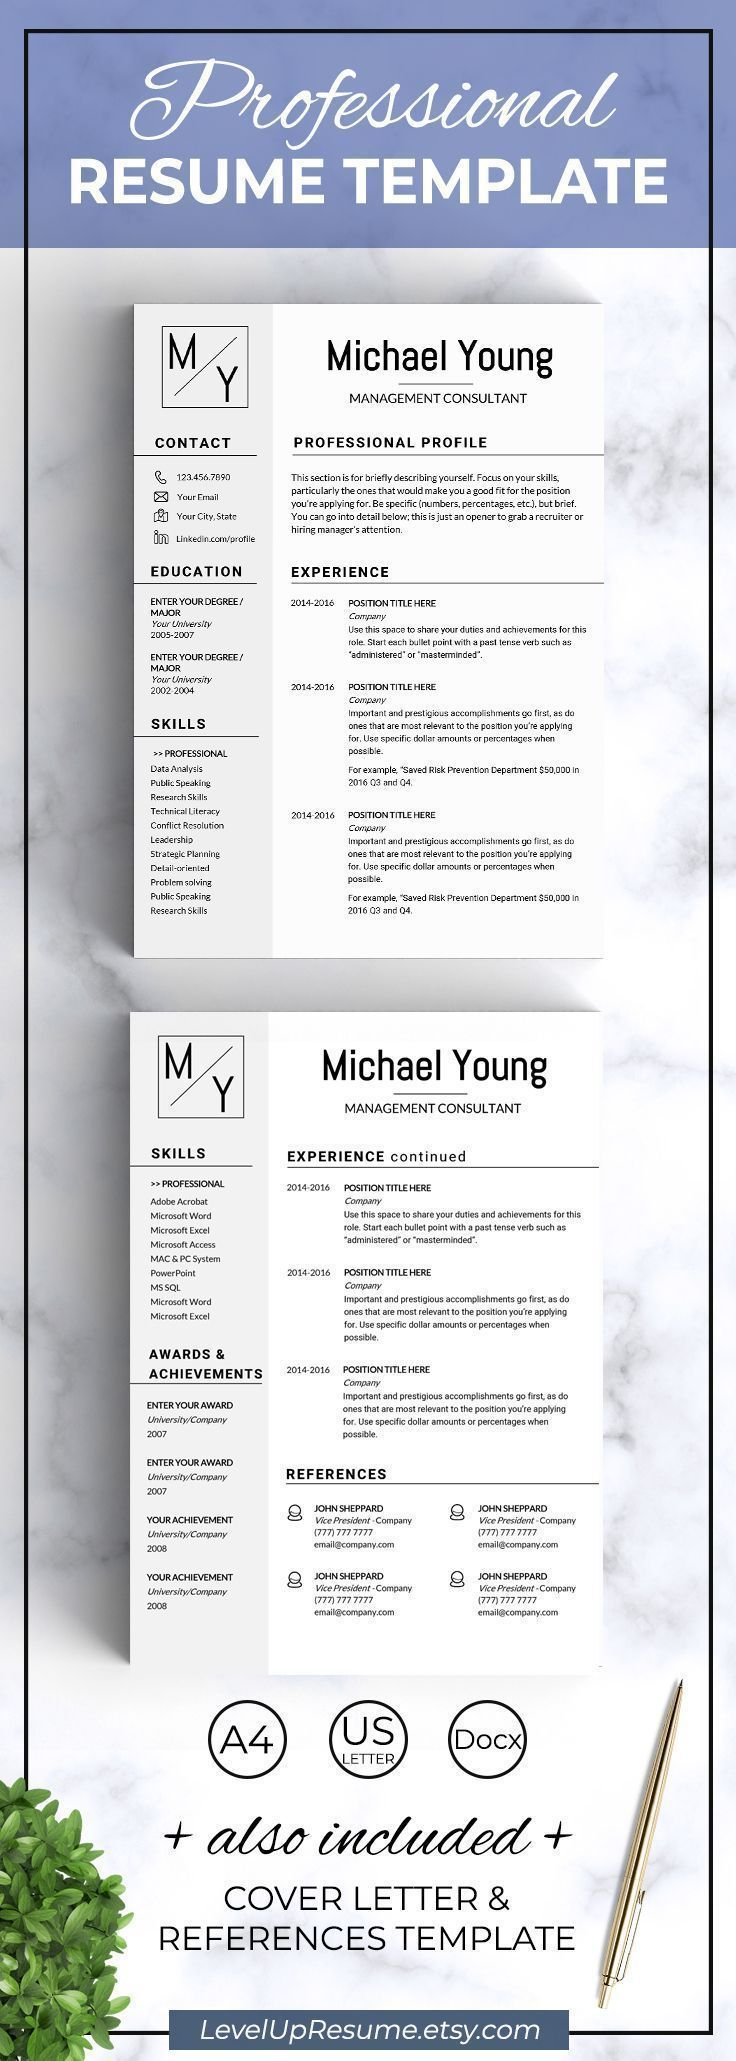 Microsoft Office Resume Templates 2014 Modern Resume Template For Ms Wordprofessional Resume Design .